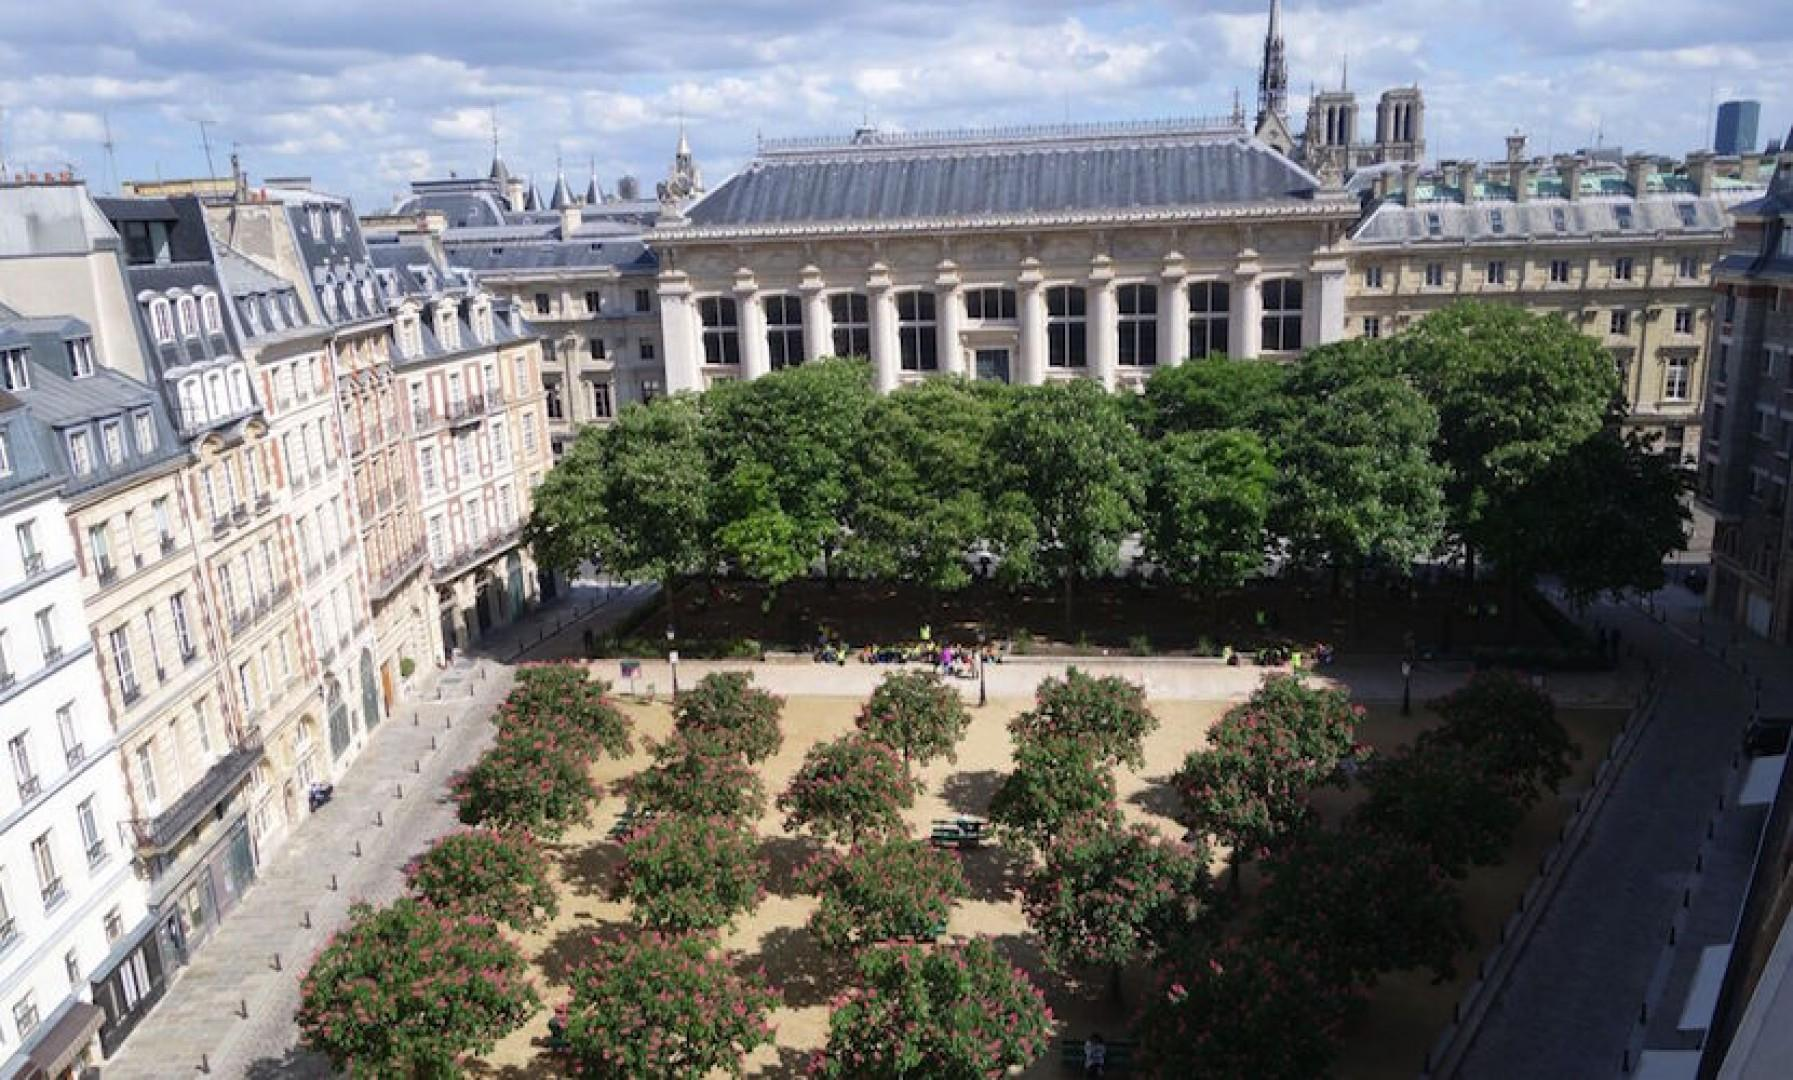 View overlooking the beautiful Place Dauphine in Paris